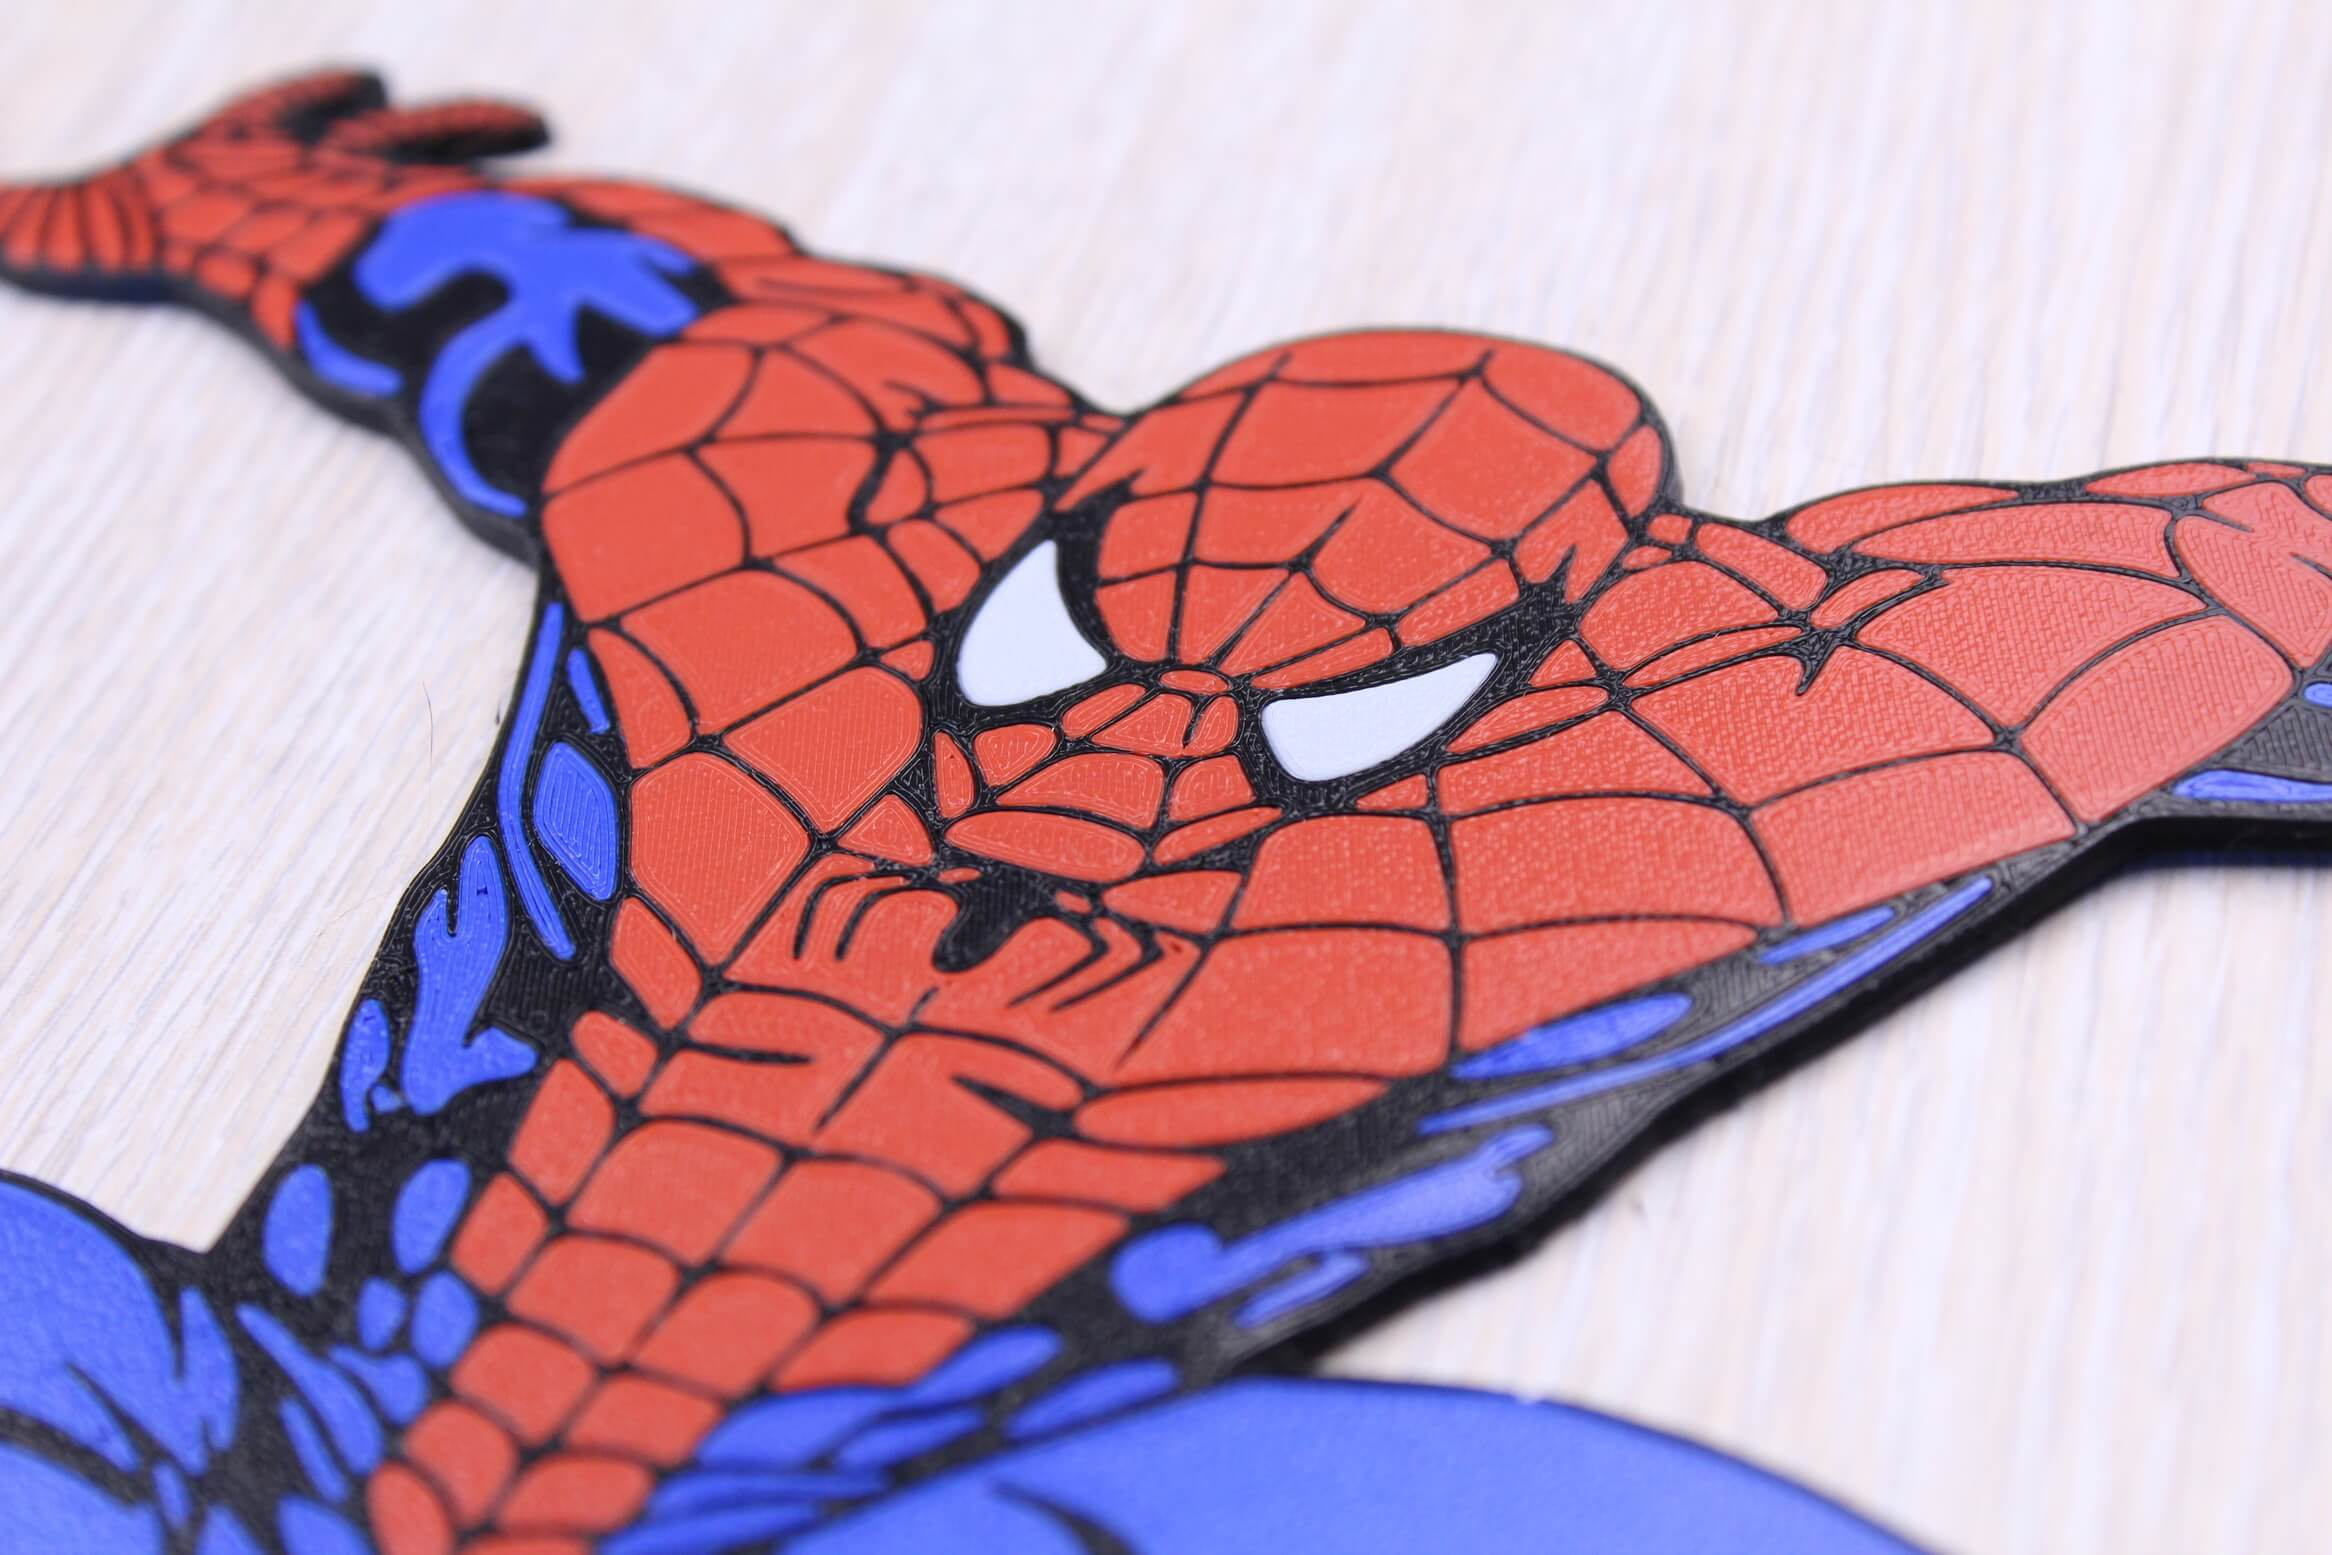 Spiderman Multi Color 3D Print 3 | Multi-Color 3D Printing Using IdeaMaker